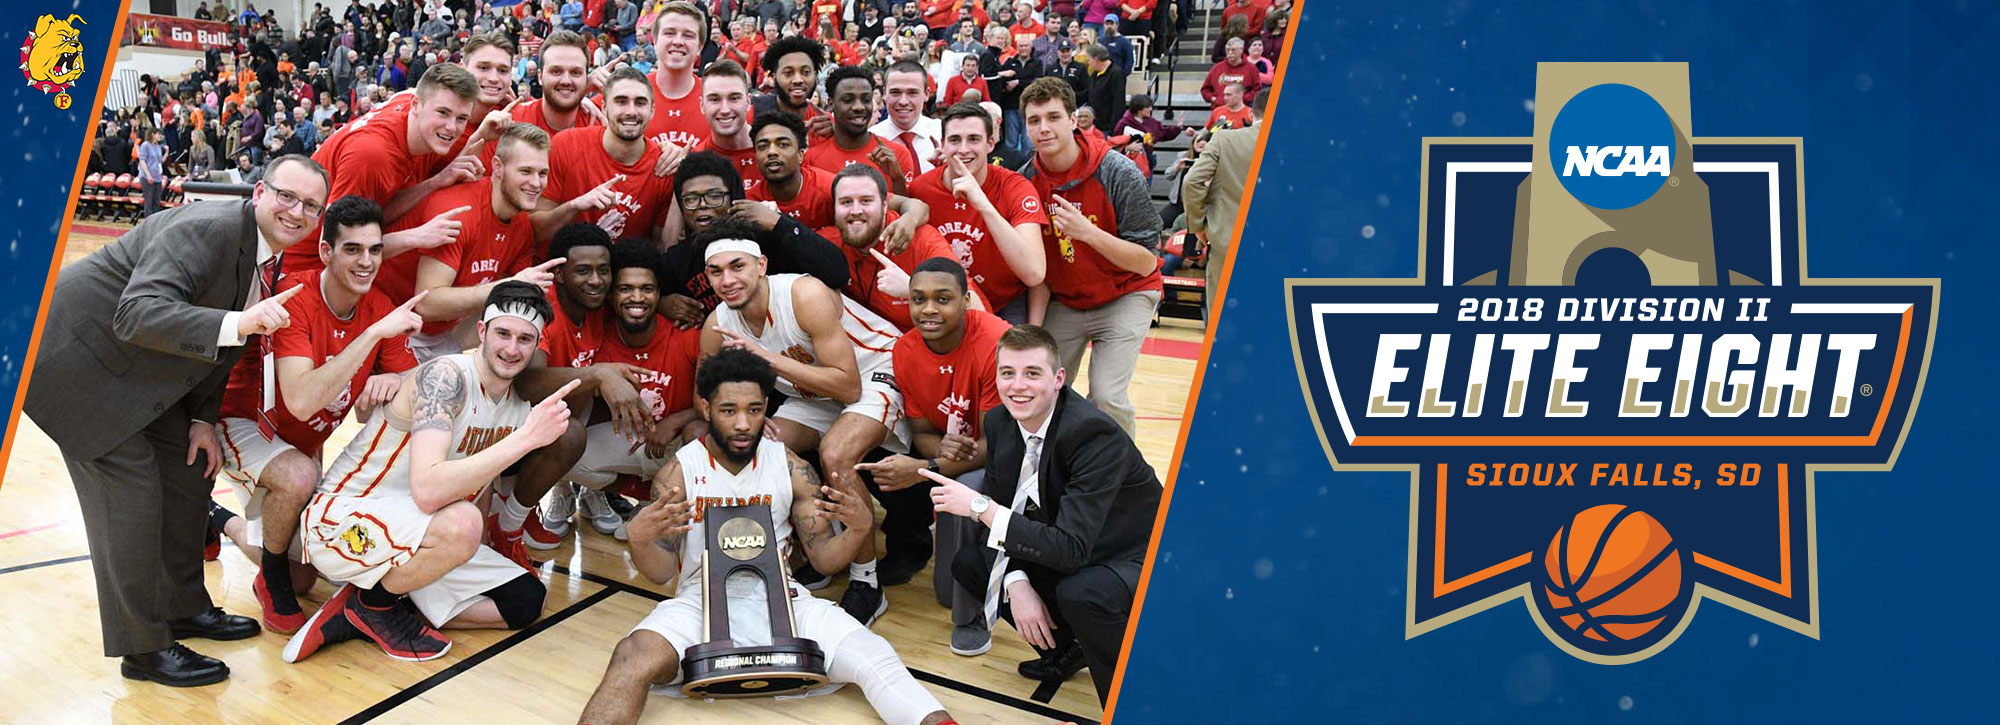 ELITE! Ferris State Wins 2018 Men's Midwest Regional Title; Earns No. 1 Seed in Elite Eight